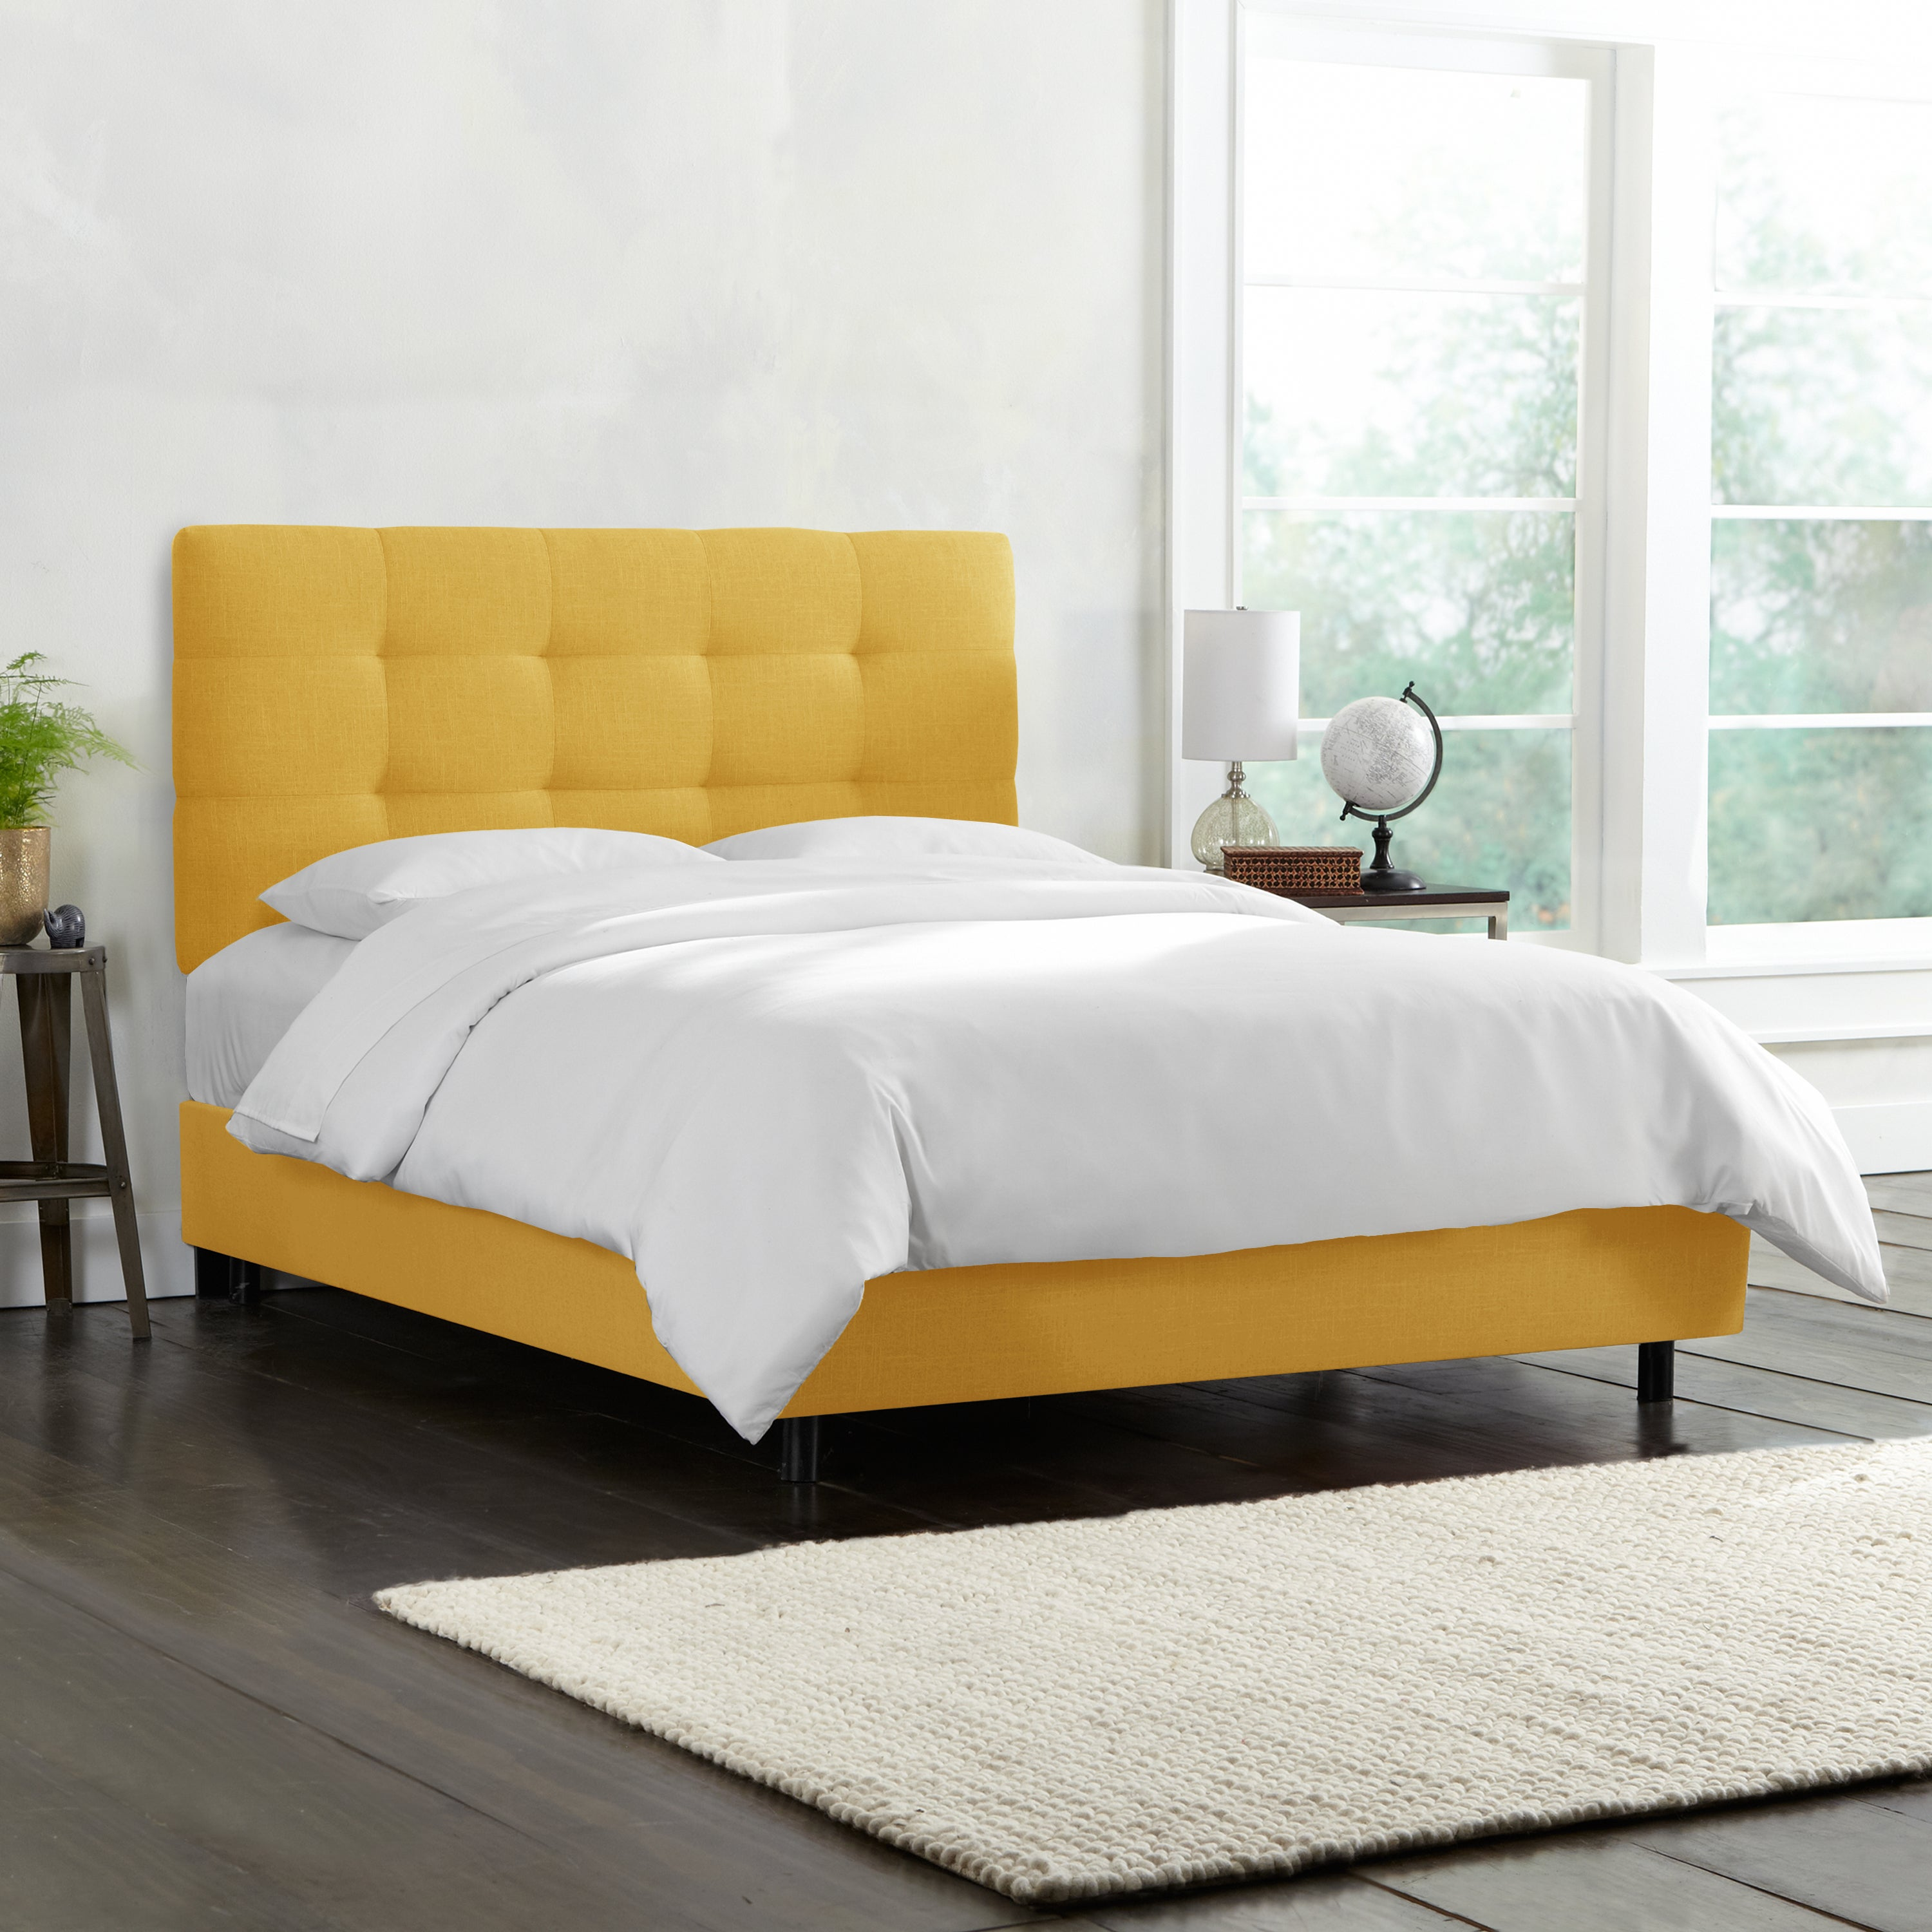 California King Beds For Less